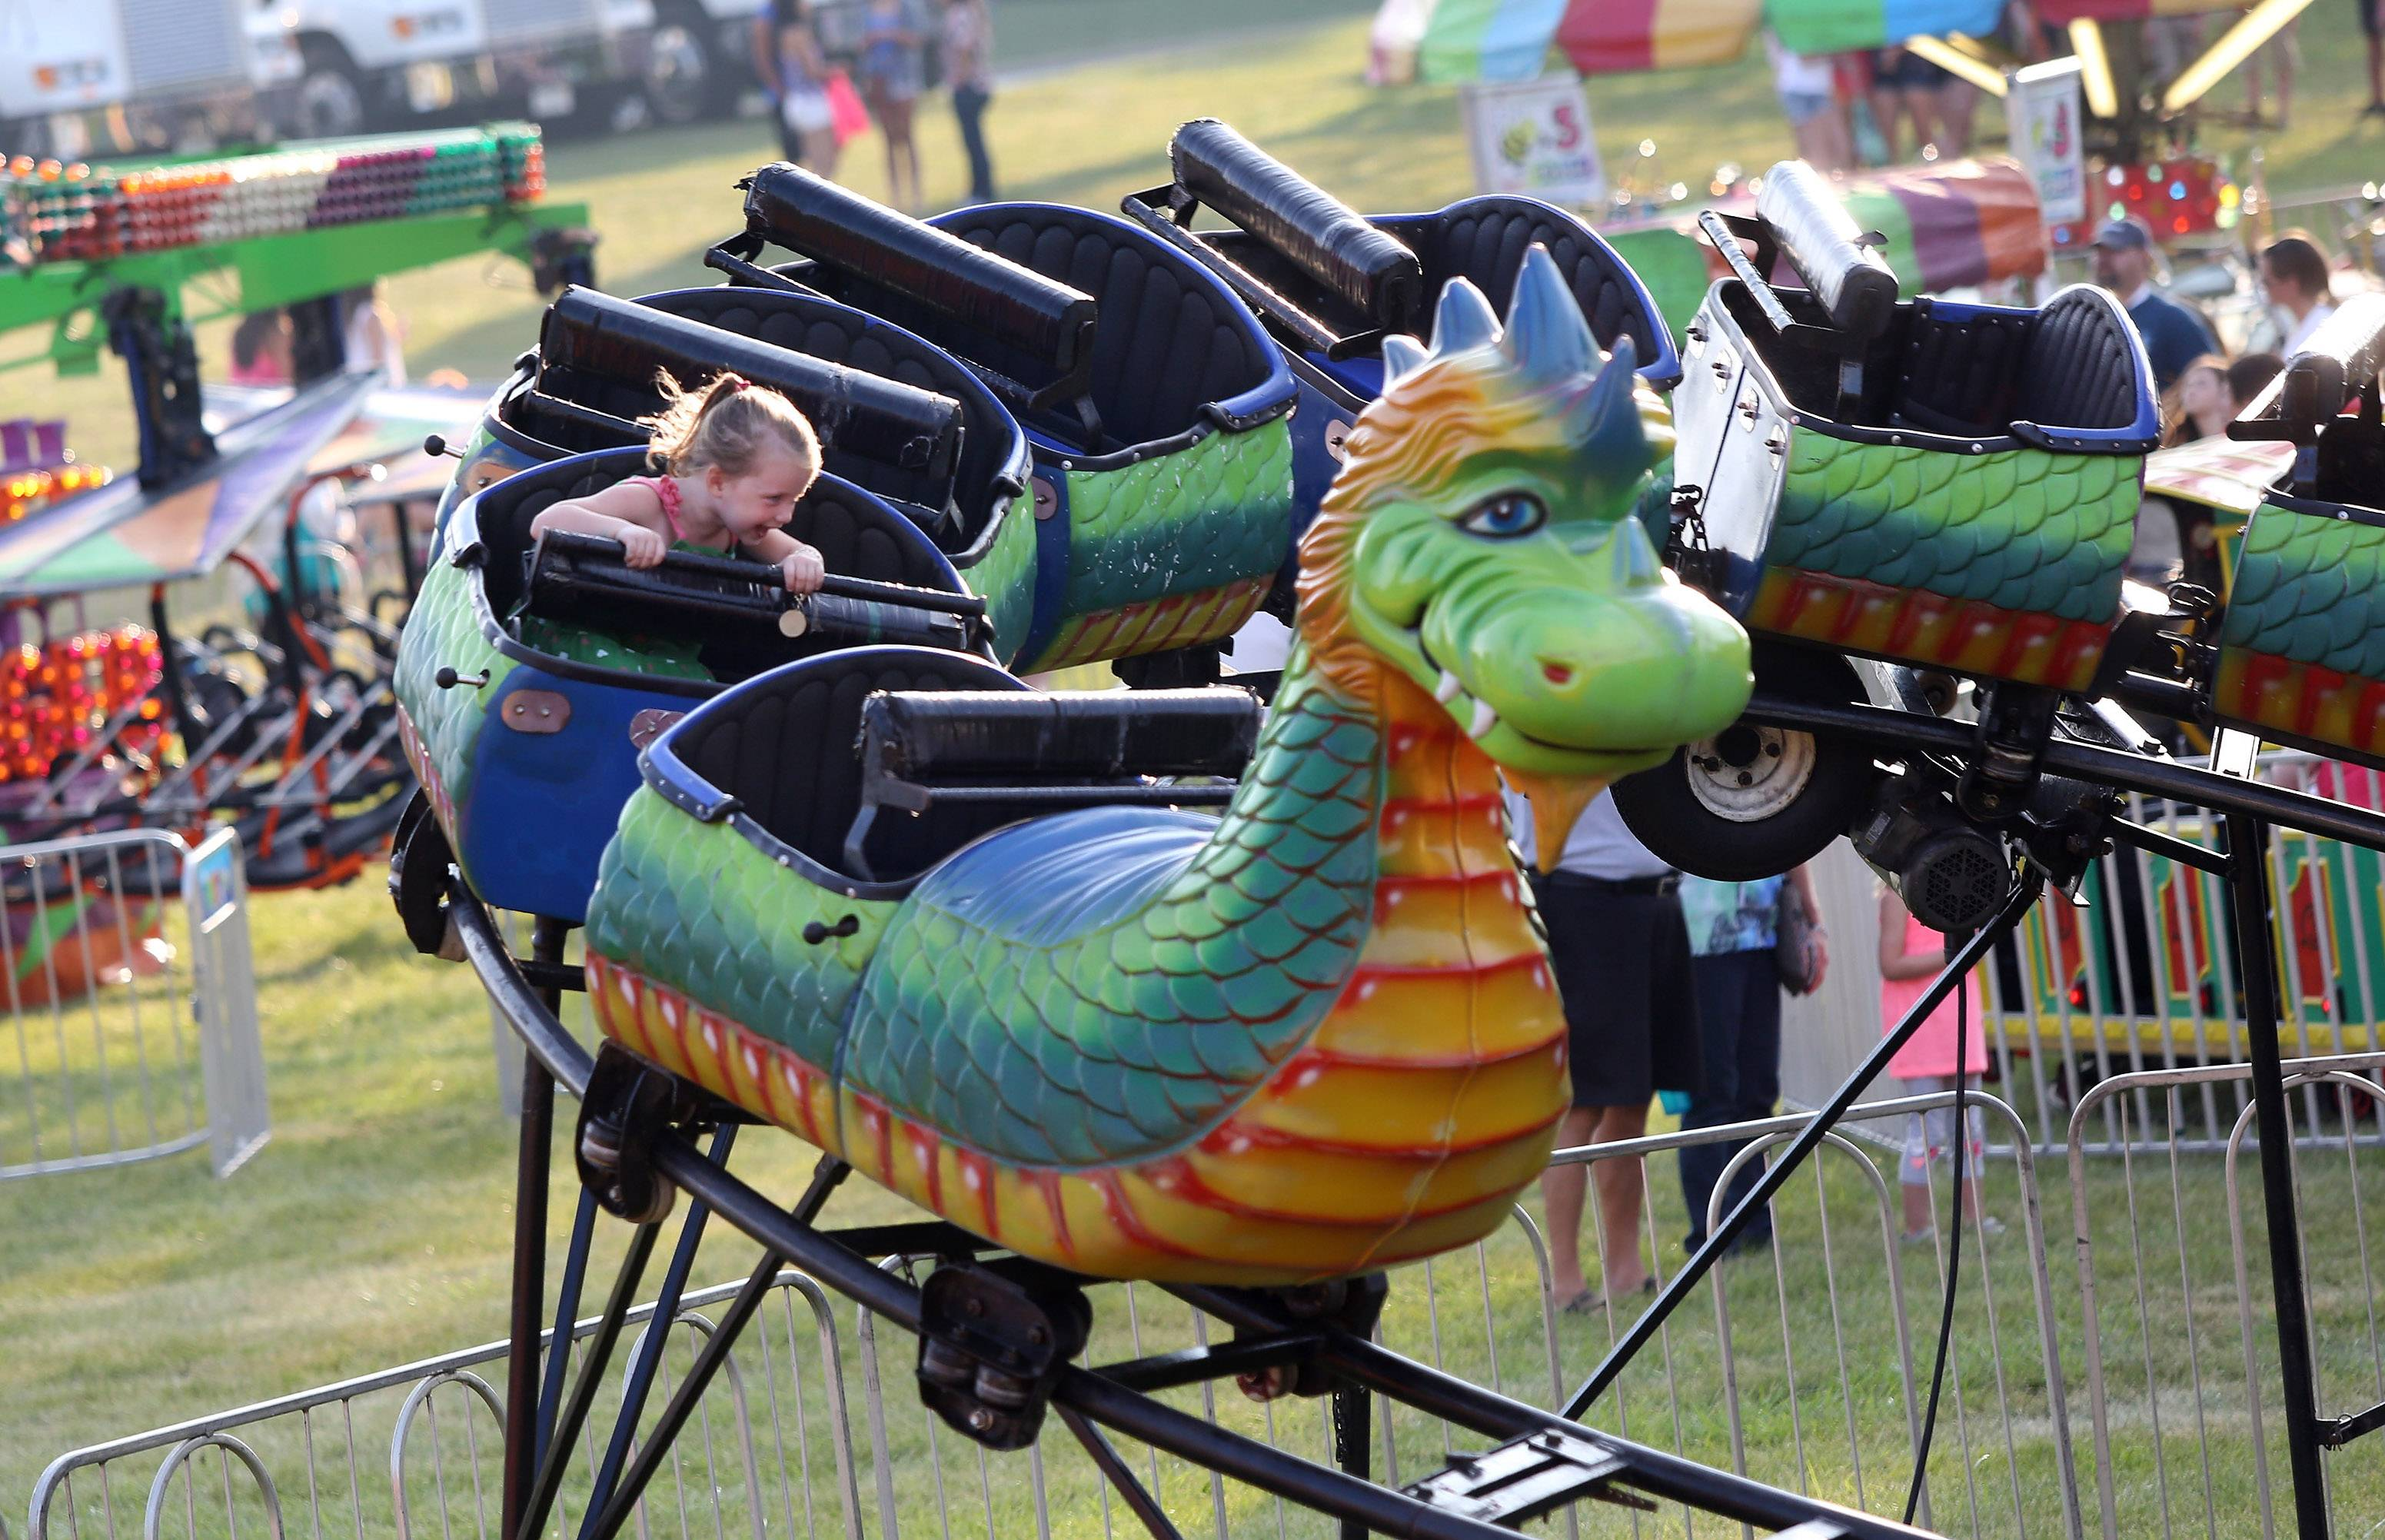 Four-year-old Brooklyn Chase of Lindenhurst has the Dragon Wagon all to herself during the first day of Lindenfest 2014 Thursday at the Lindenhurst Village Hall grounds. The evening featured Miss, Jr. Miss and the Little Miss Lindenhurst pageants, bingo, carnival rides and food tents.